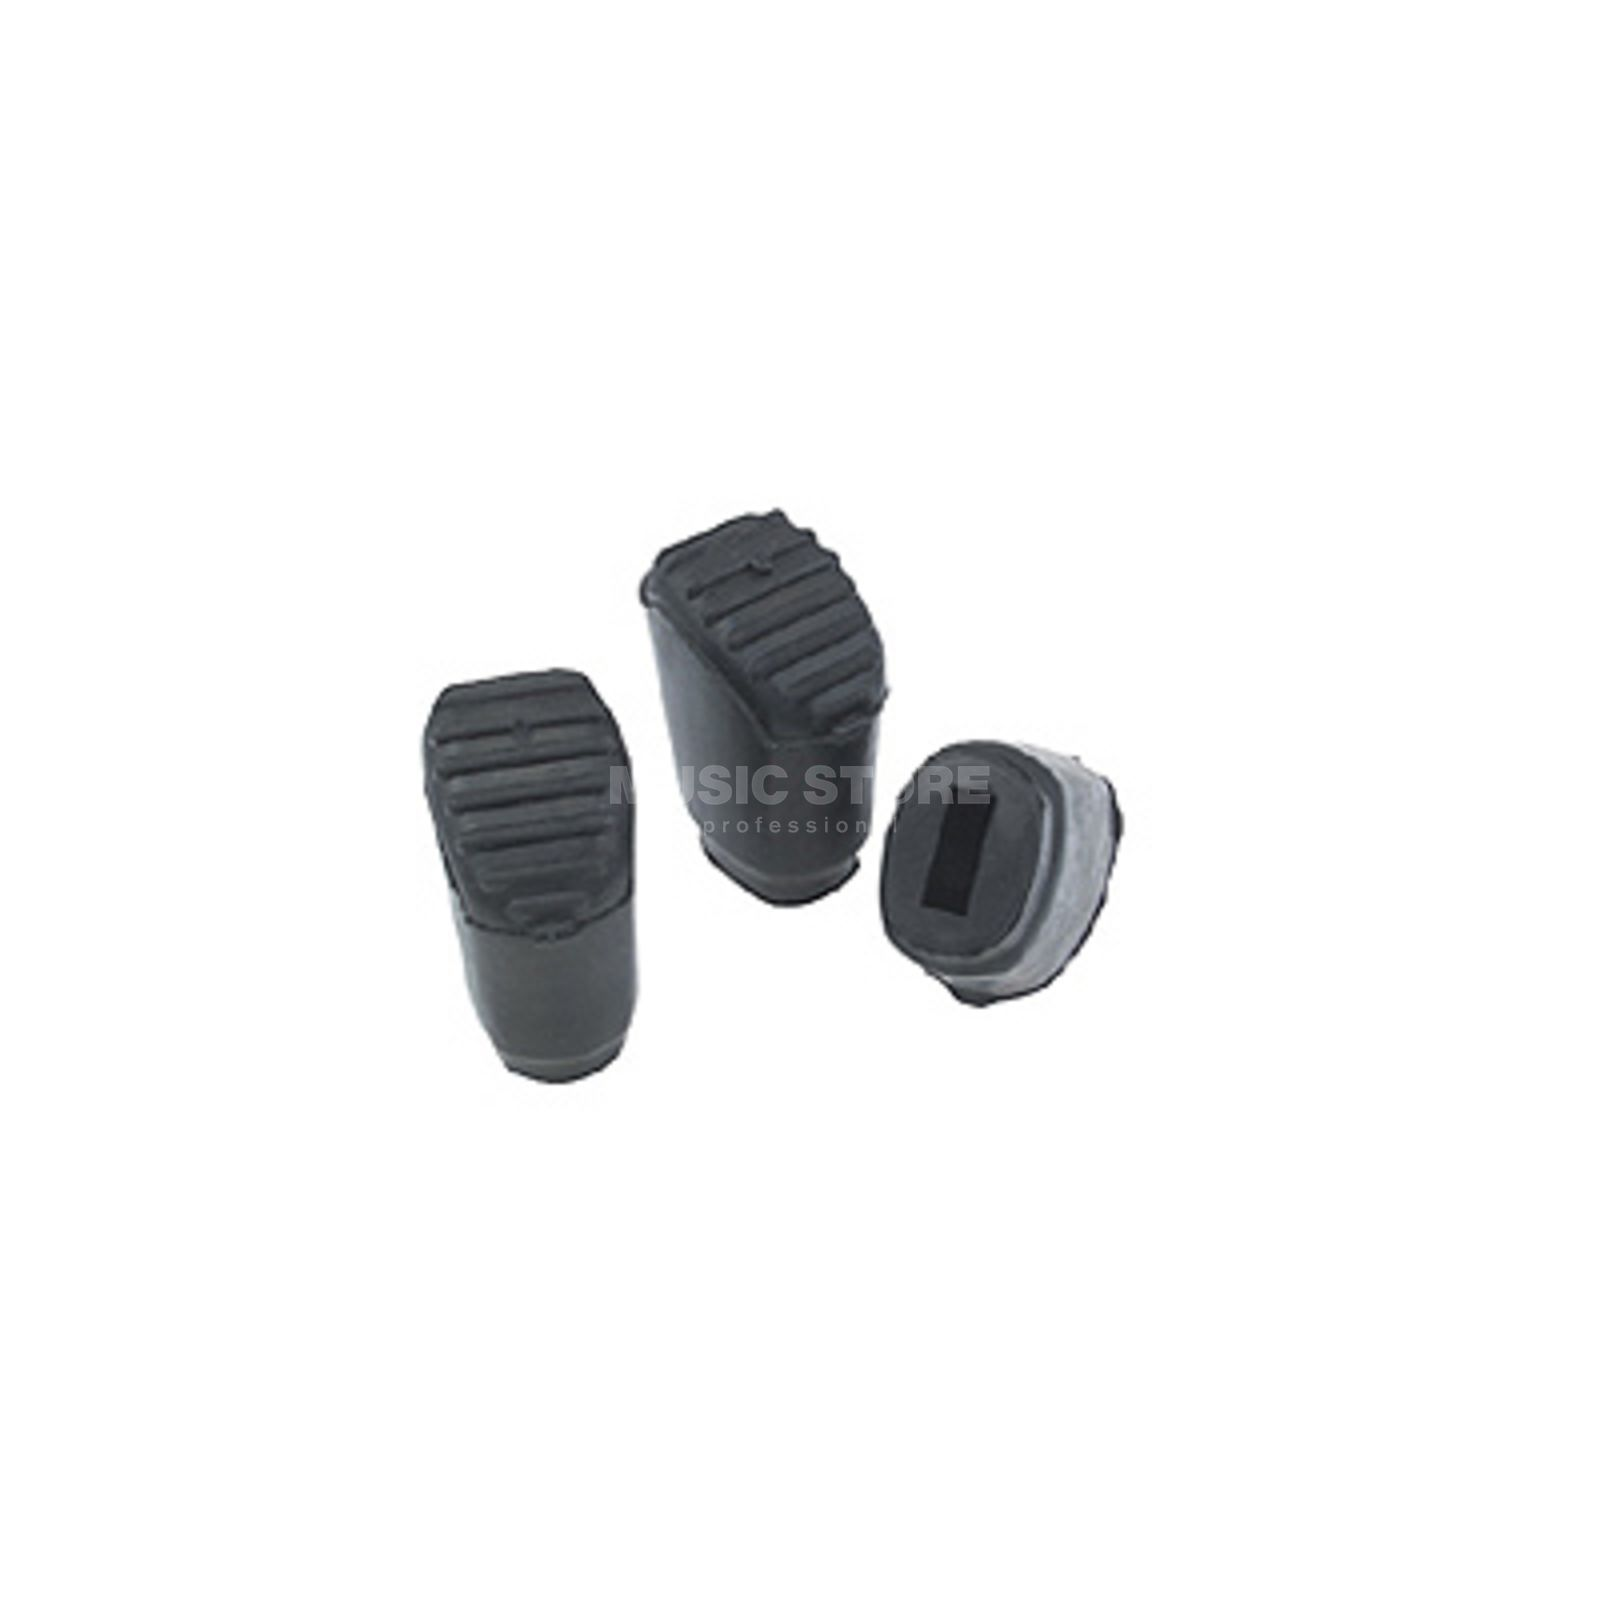 Gibraltar SC-PC07 Rubber feet, large, for cymbal stand, 3 pcs Produktbillede